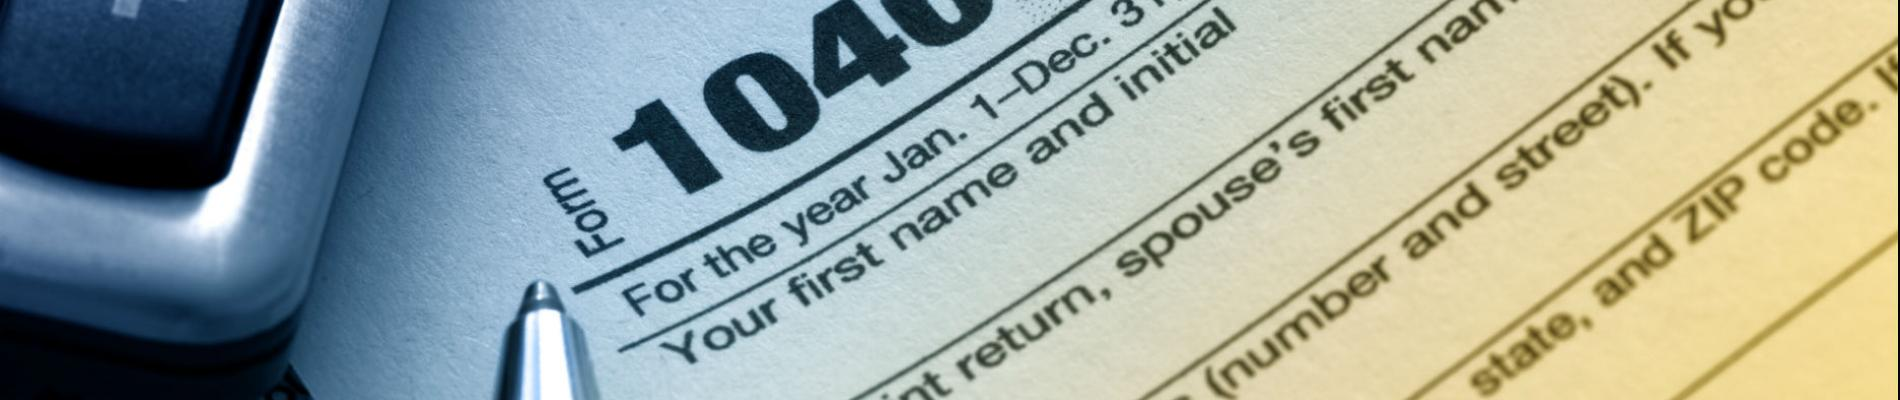 The New Tax Law: How to Make it Work For You (Resheduled)